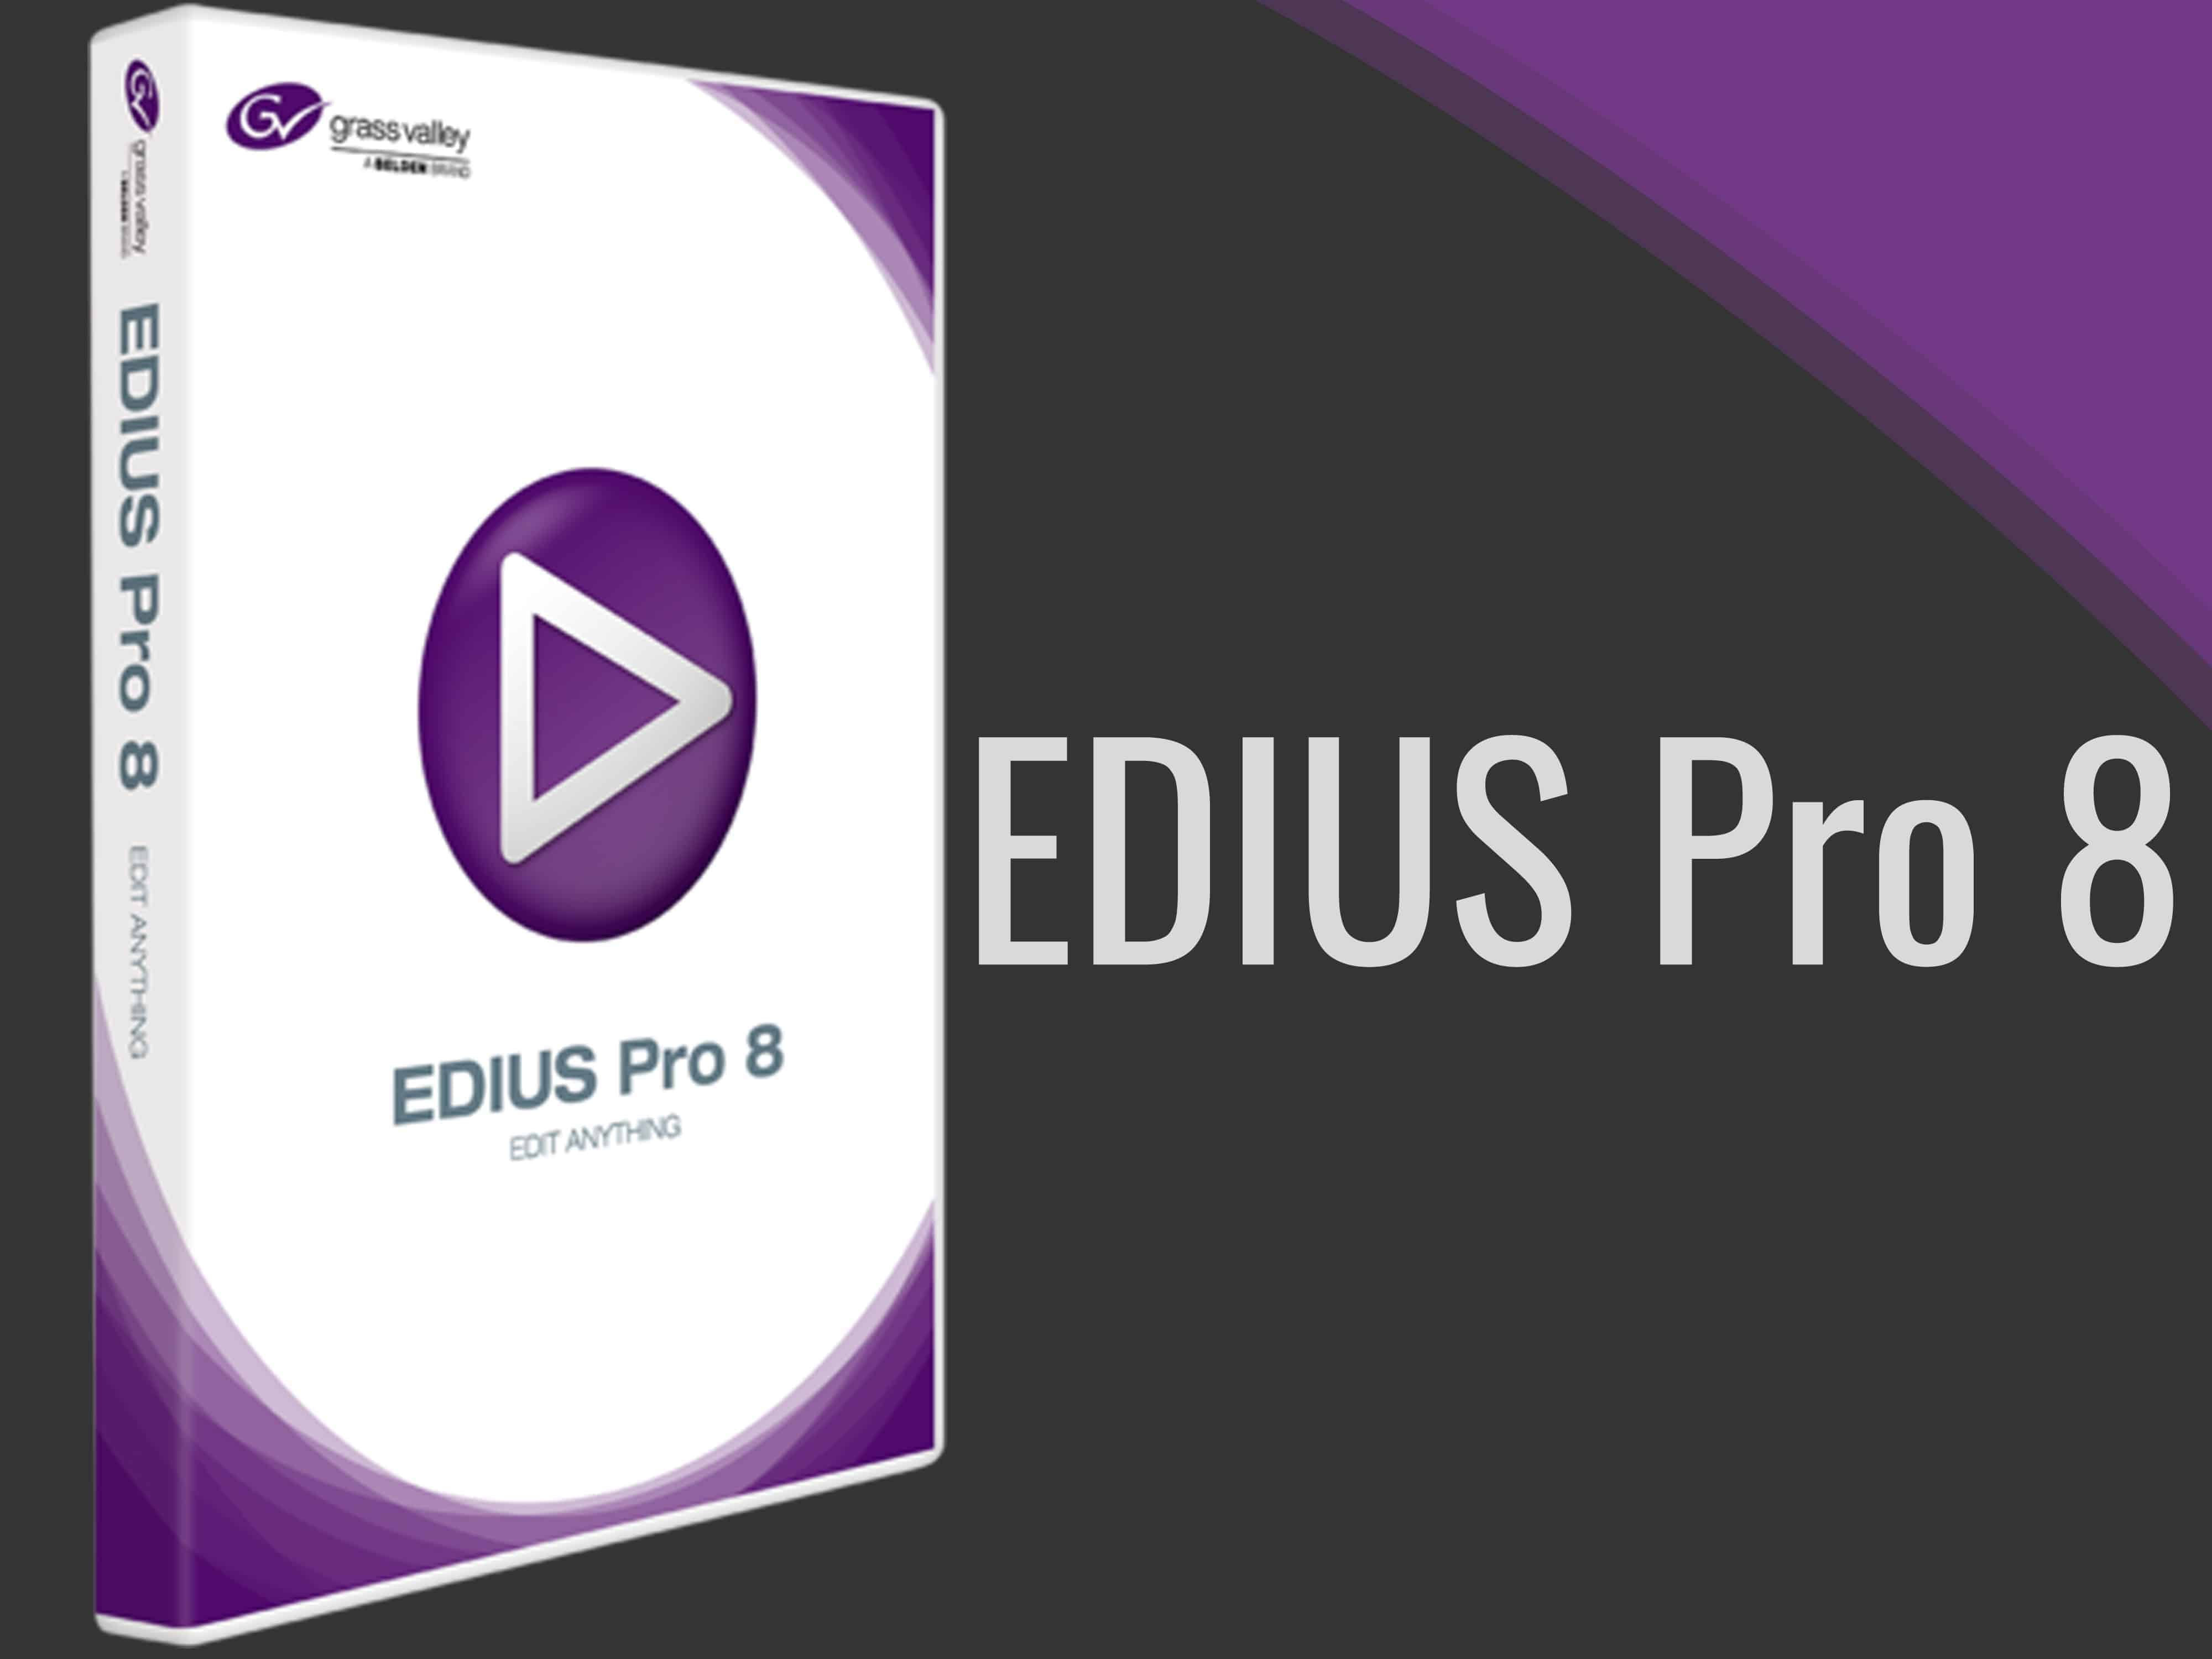 EDIUS 9, Satyam Film, Edius Pro 8, Edius Pro 9, EDIUS Wedding Projects, Video Editing, Video Mixing